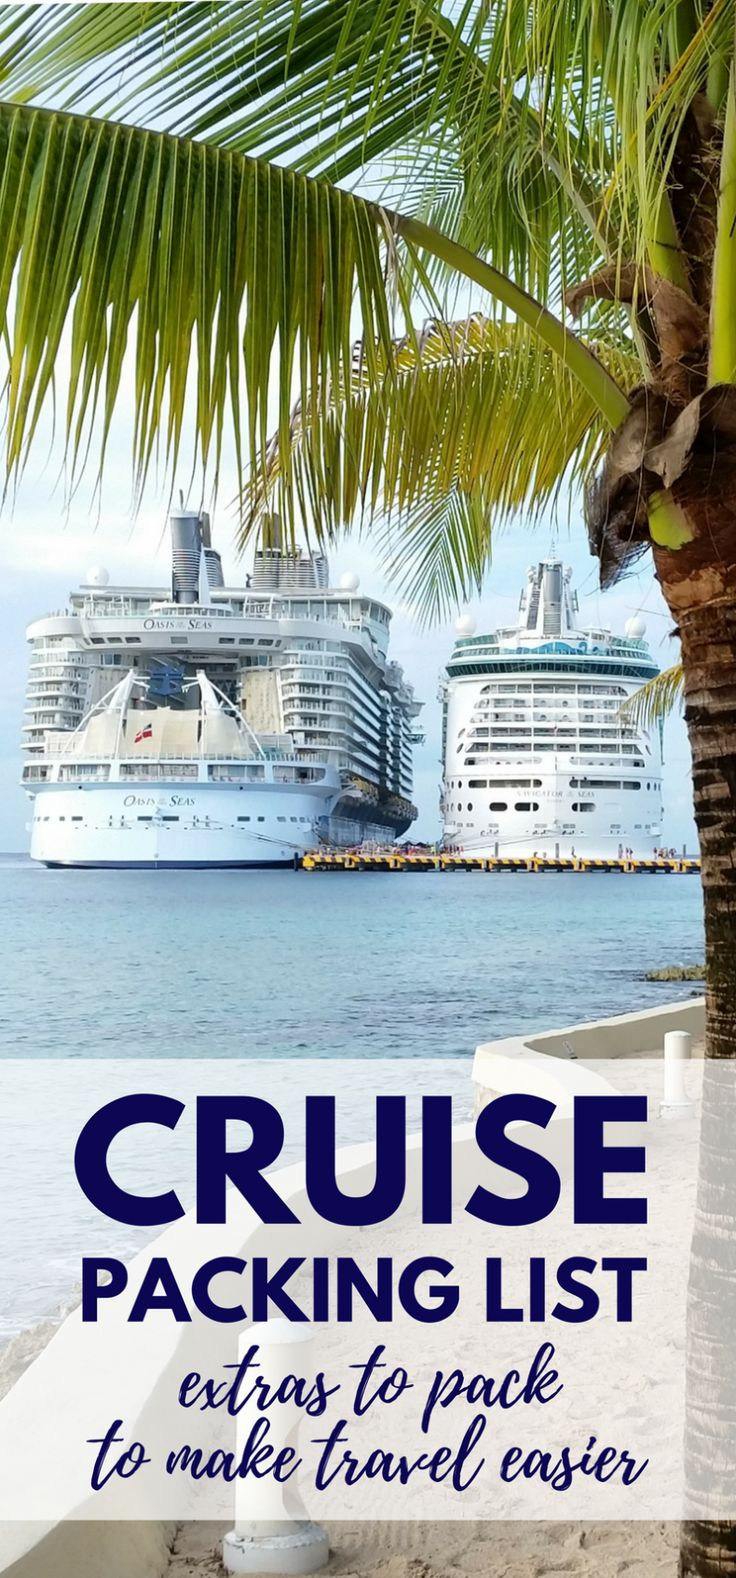 For what to pack for a cruise, some packing tips to add to checklist. Also what to wear on a cruise formal night, outfit ideas. Cruise tips, whether it's a short cruise or a 7 day cruise in the summer or winter, with some essentials to add to your cruise packing list and carry-on luggage. Cruise to Bahamas, Caribbean, Alaska with Carnival, Royal Caribbean, Norwegian NCL, Disney, Princess, Holland America. Cozumel cruise port, western caribbean cruise. #cruise #cruisetips